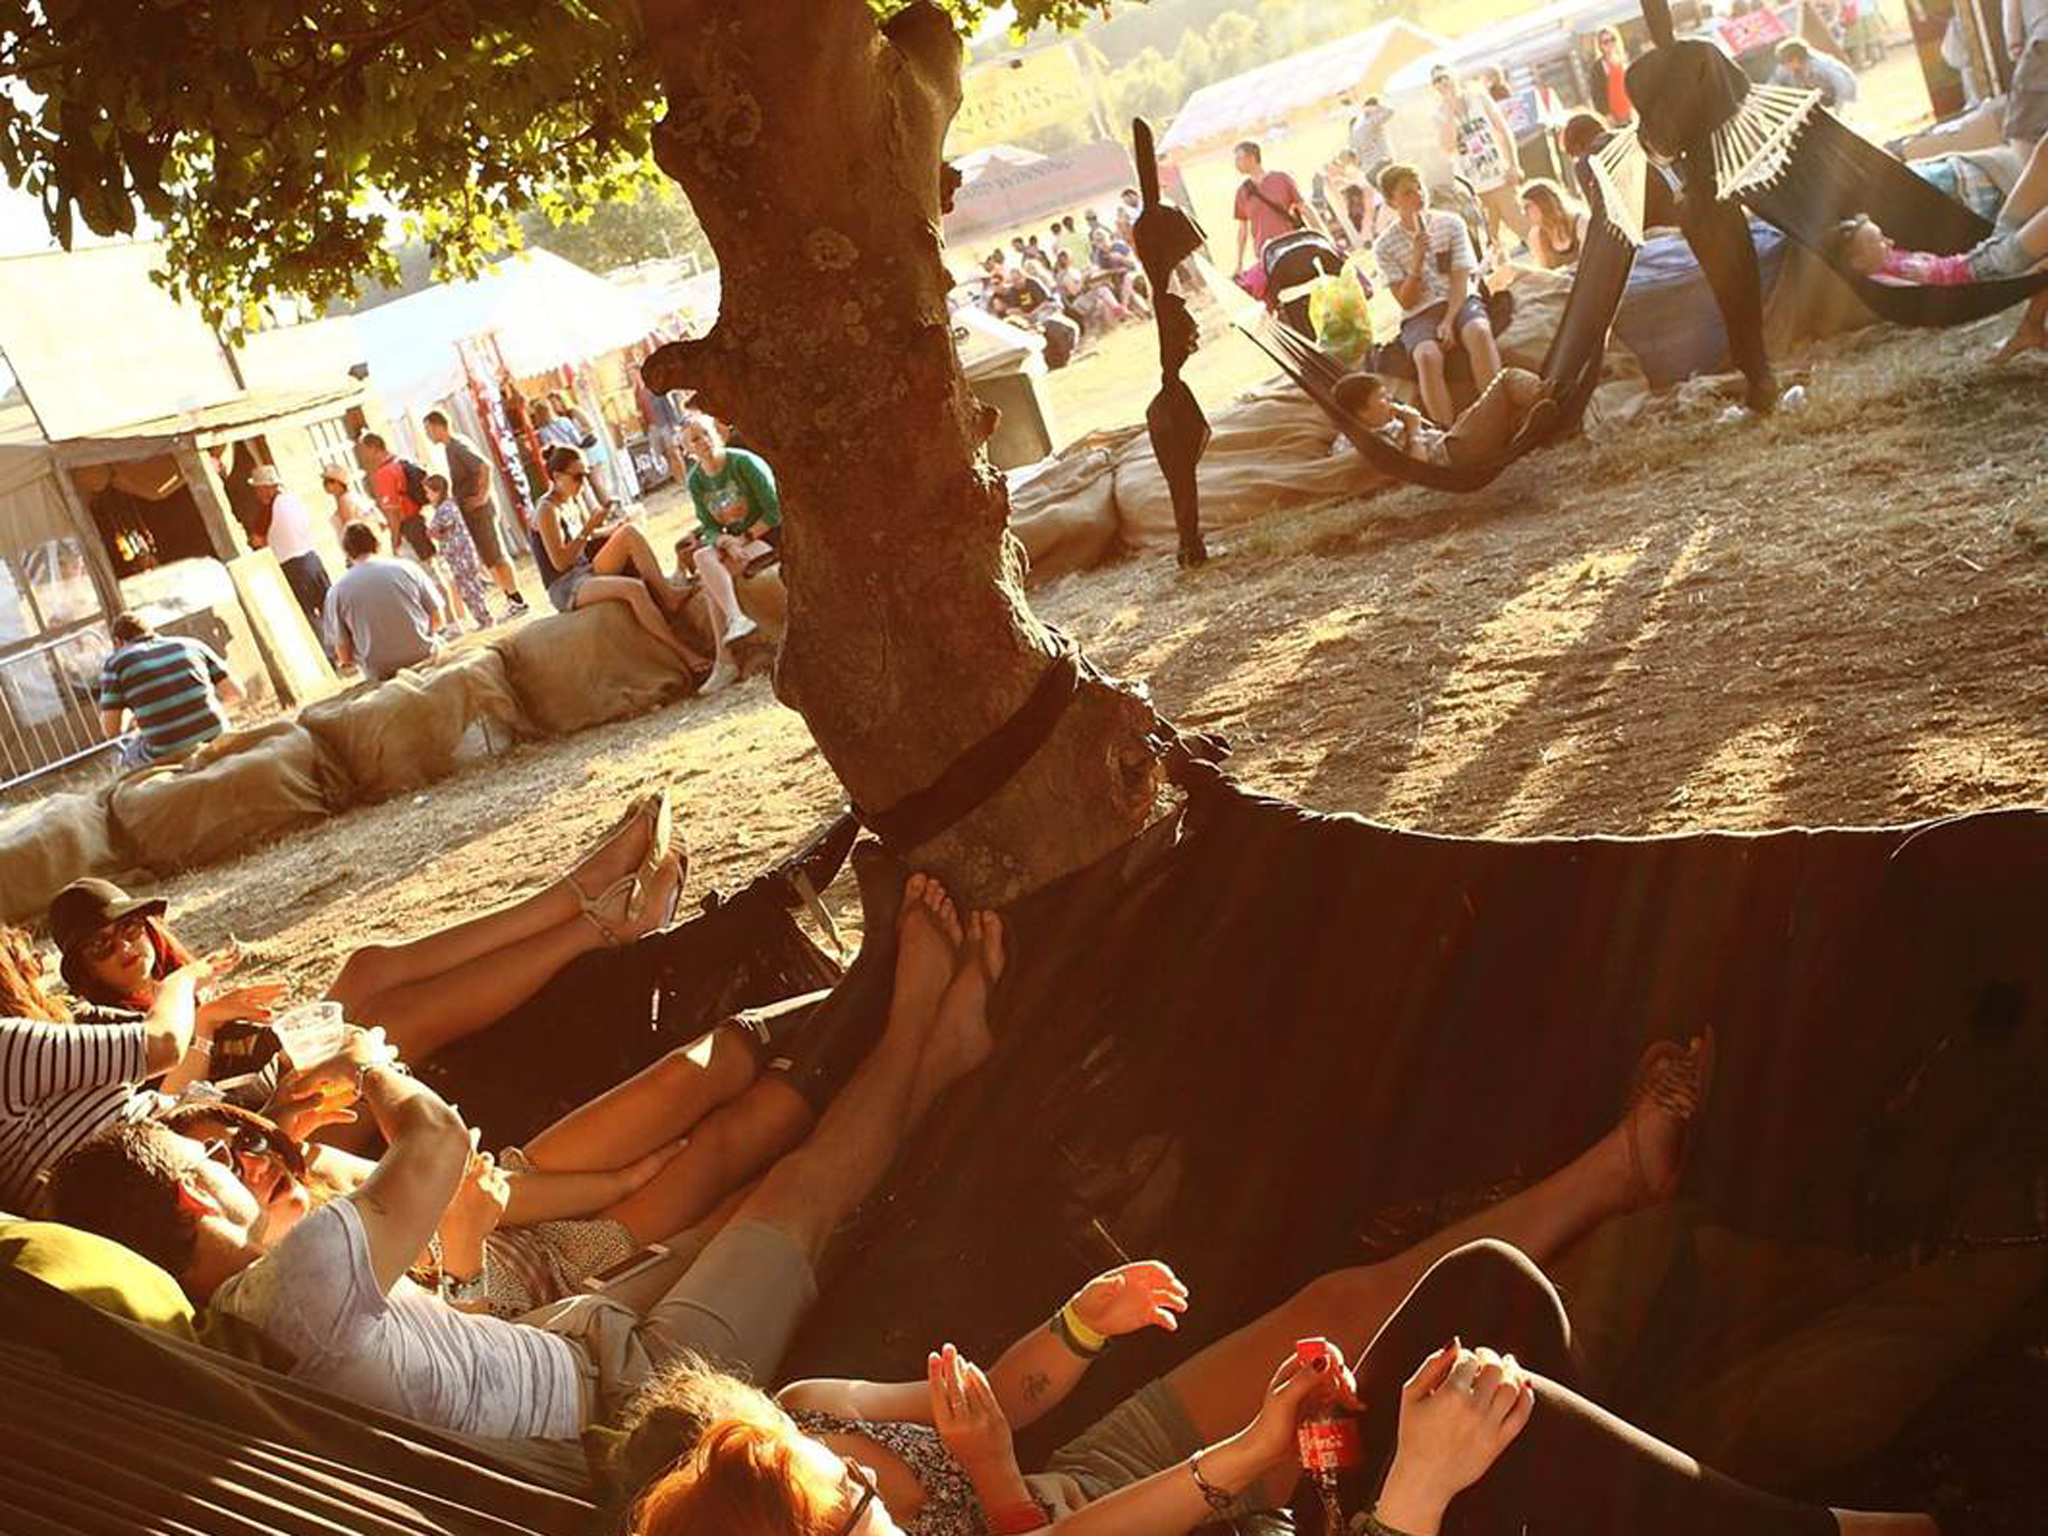 Win tickets for you and three friends to Standon Calling 2015